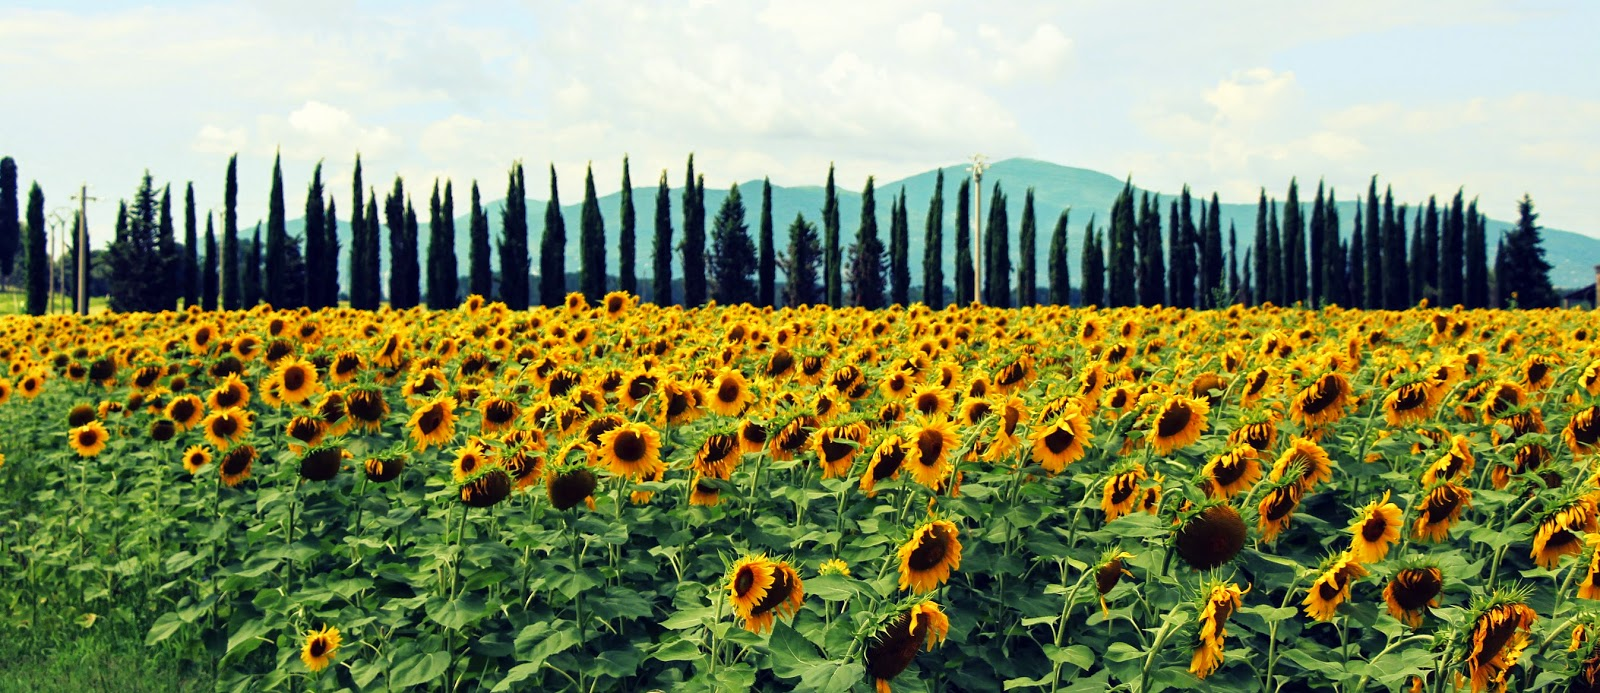 Sunflowers and cypress trees in Tuscany, Italy